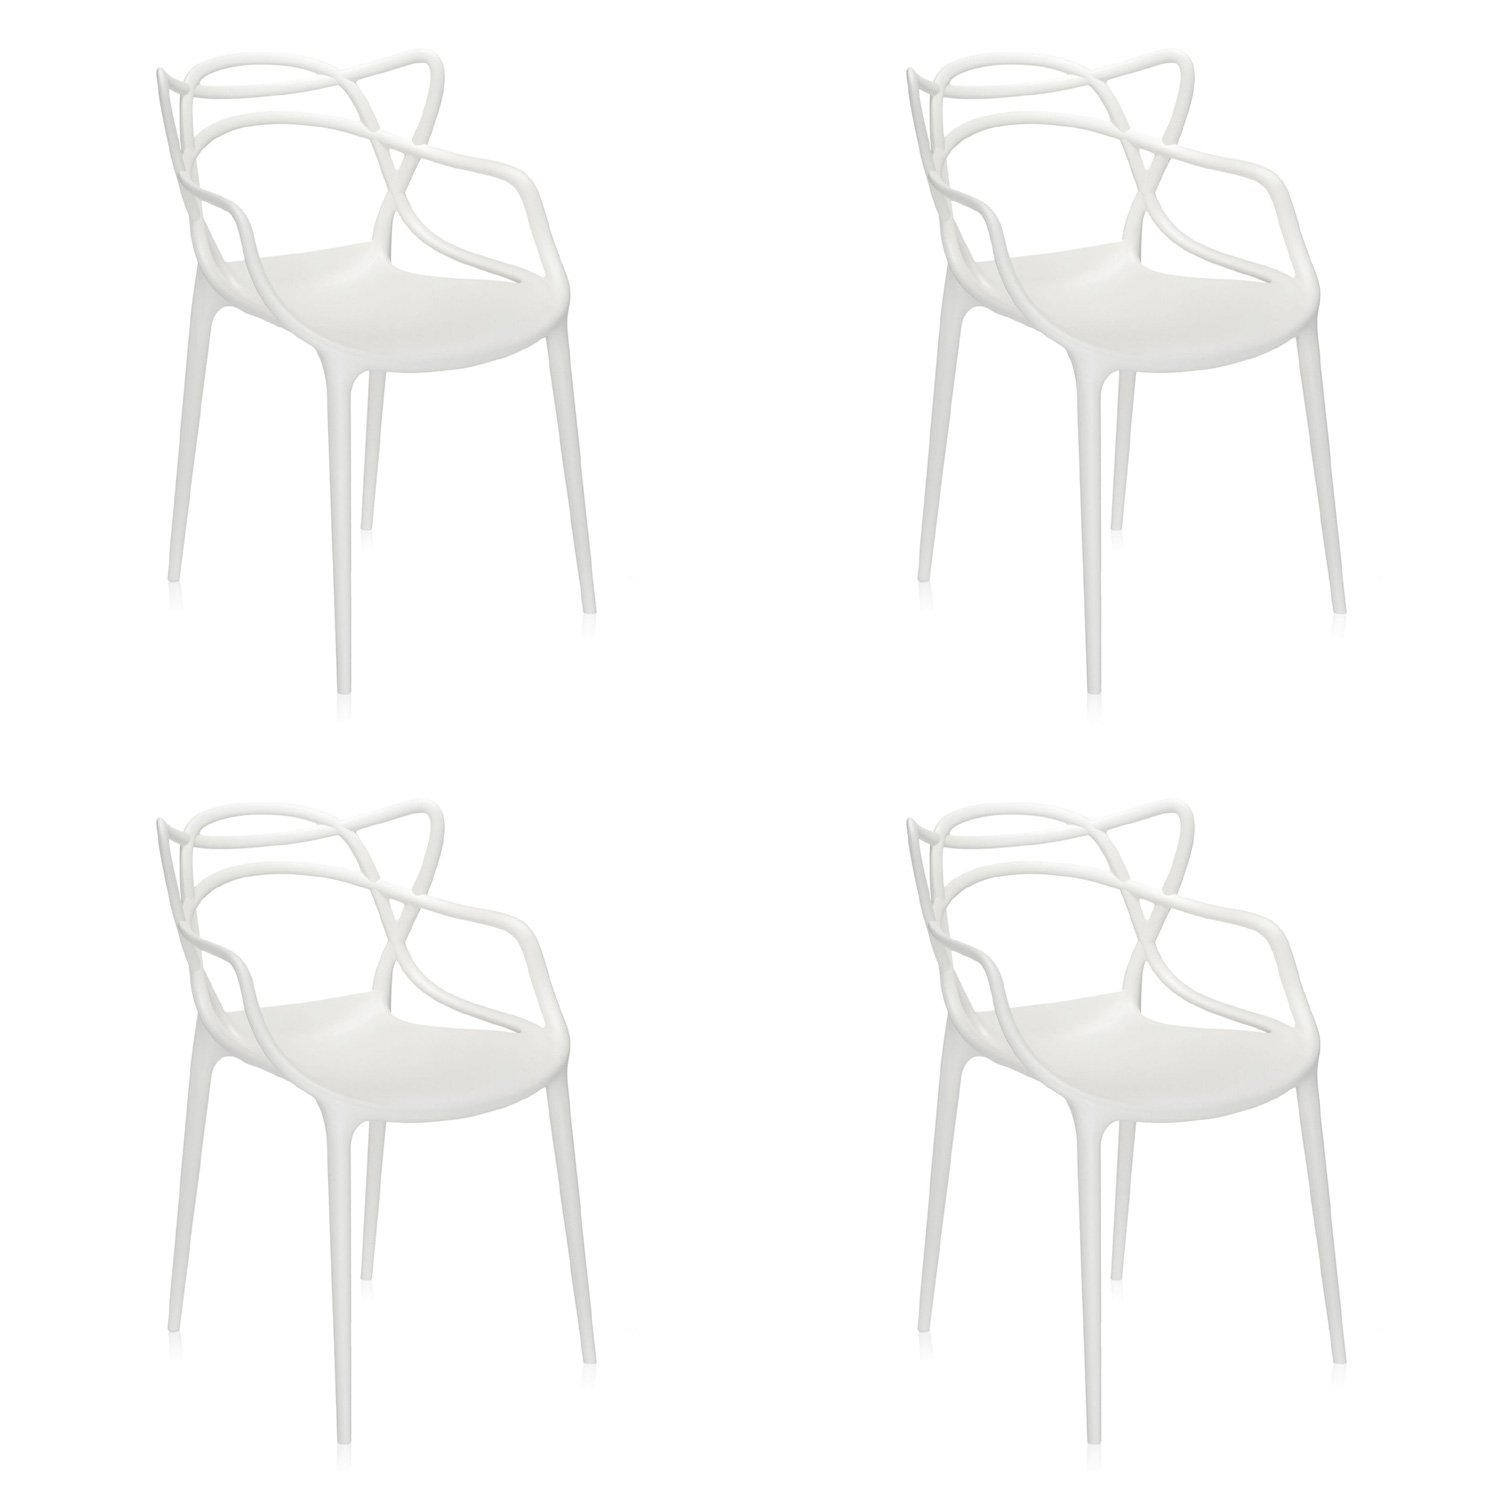 Kartell Masters Chairs set of 4 By Philippe Starck & Eugeni